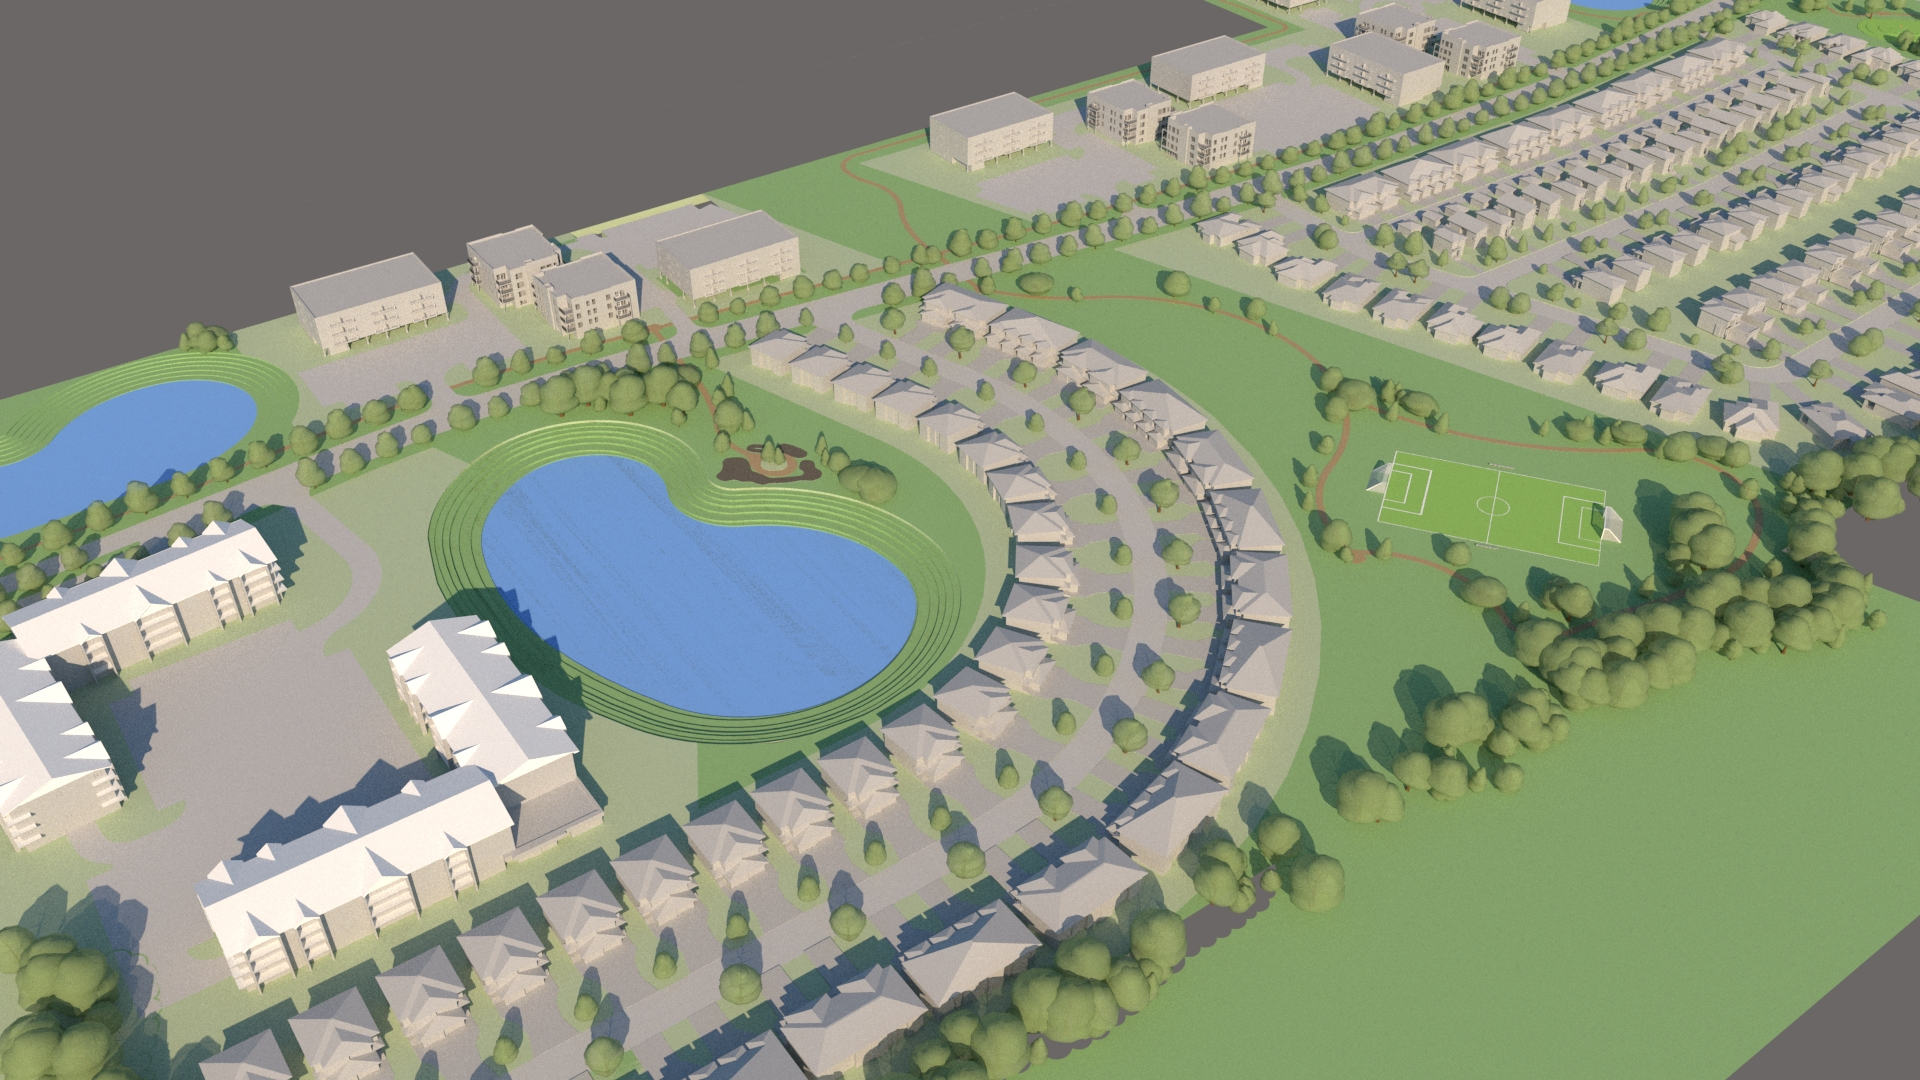 Community Development Modelling - 3D concept model of a new community development.